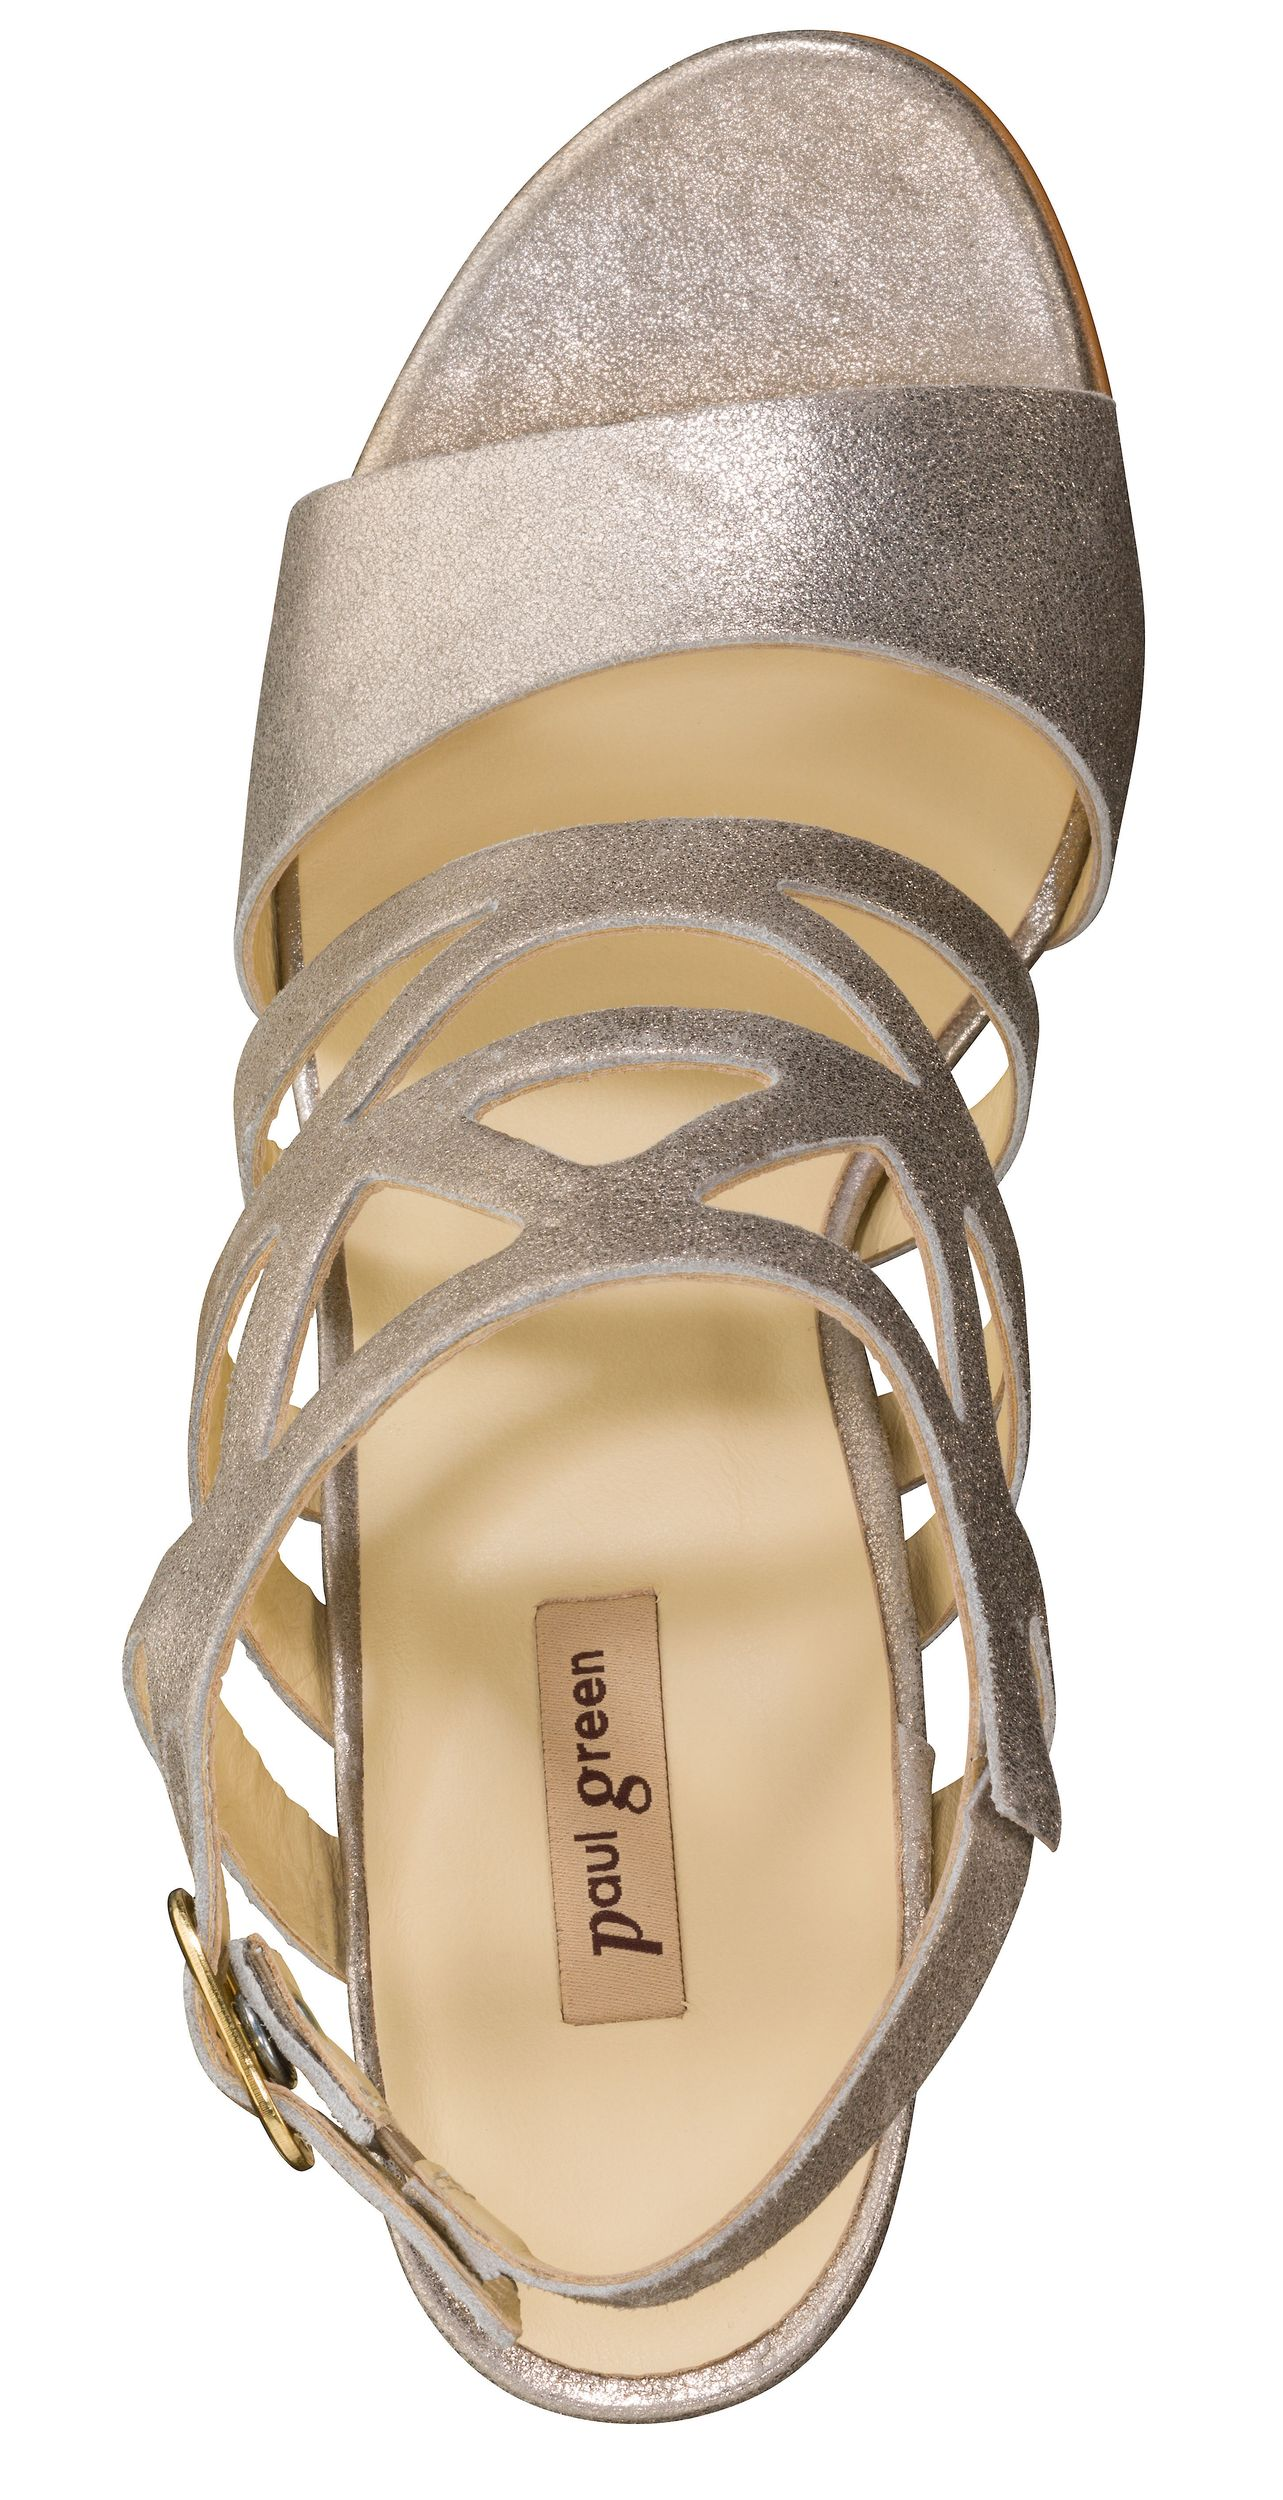 outlet store ddd83 a435b Glamorous Sandals in Champagne - Paul Green